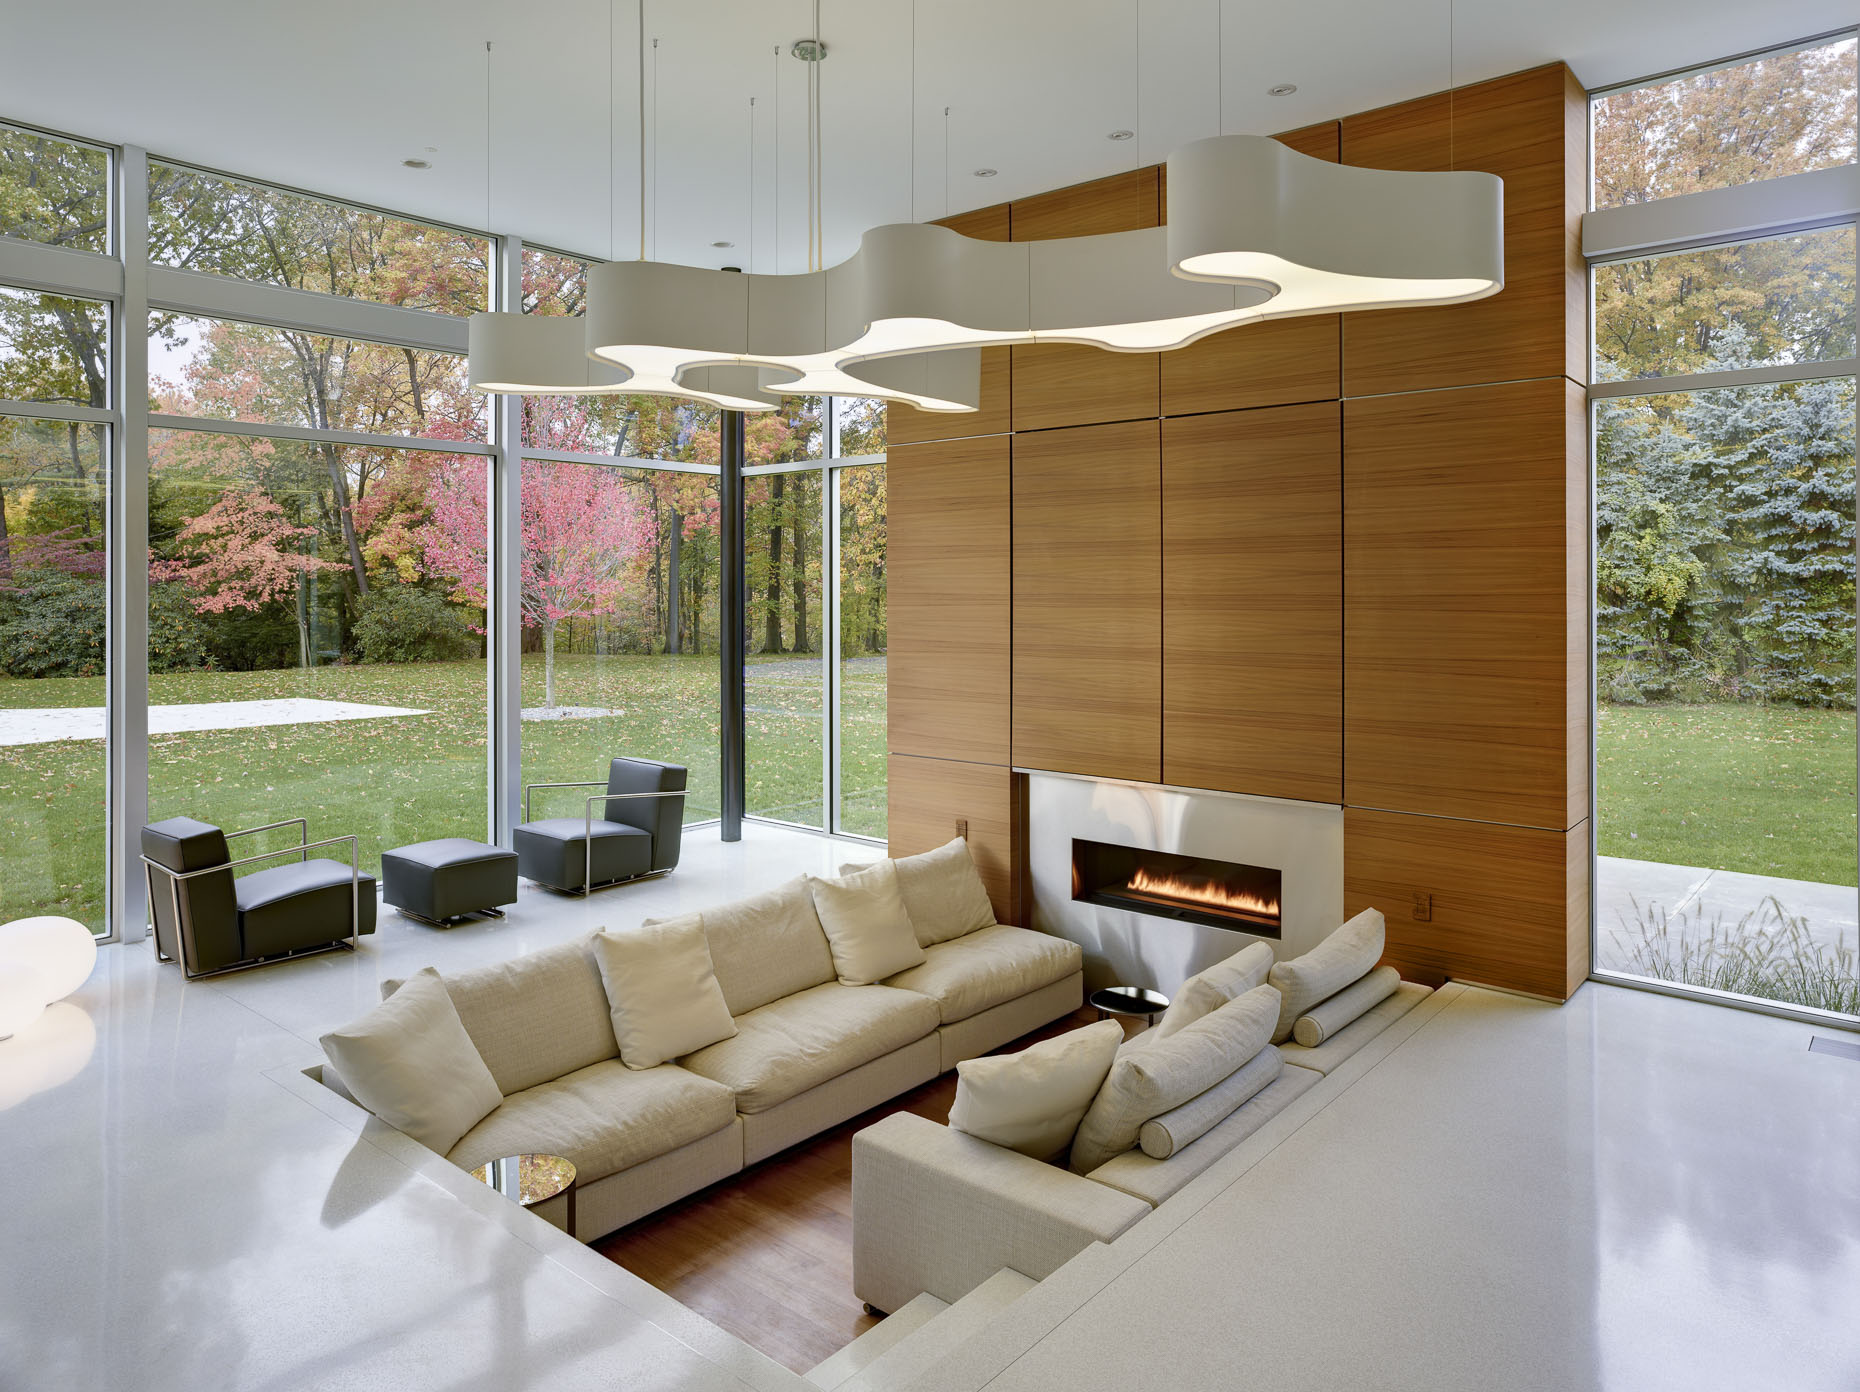 Shaker Heights Private Residence by Dimit Architects photographed by Brad Feinknopf based in Columbus, Ohio